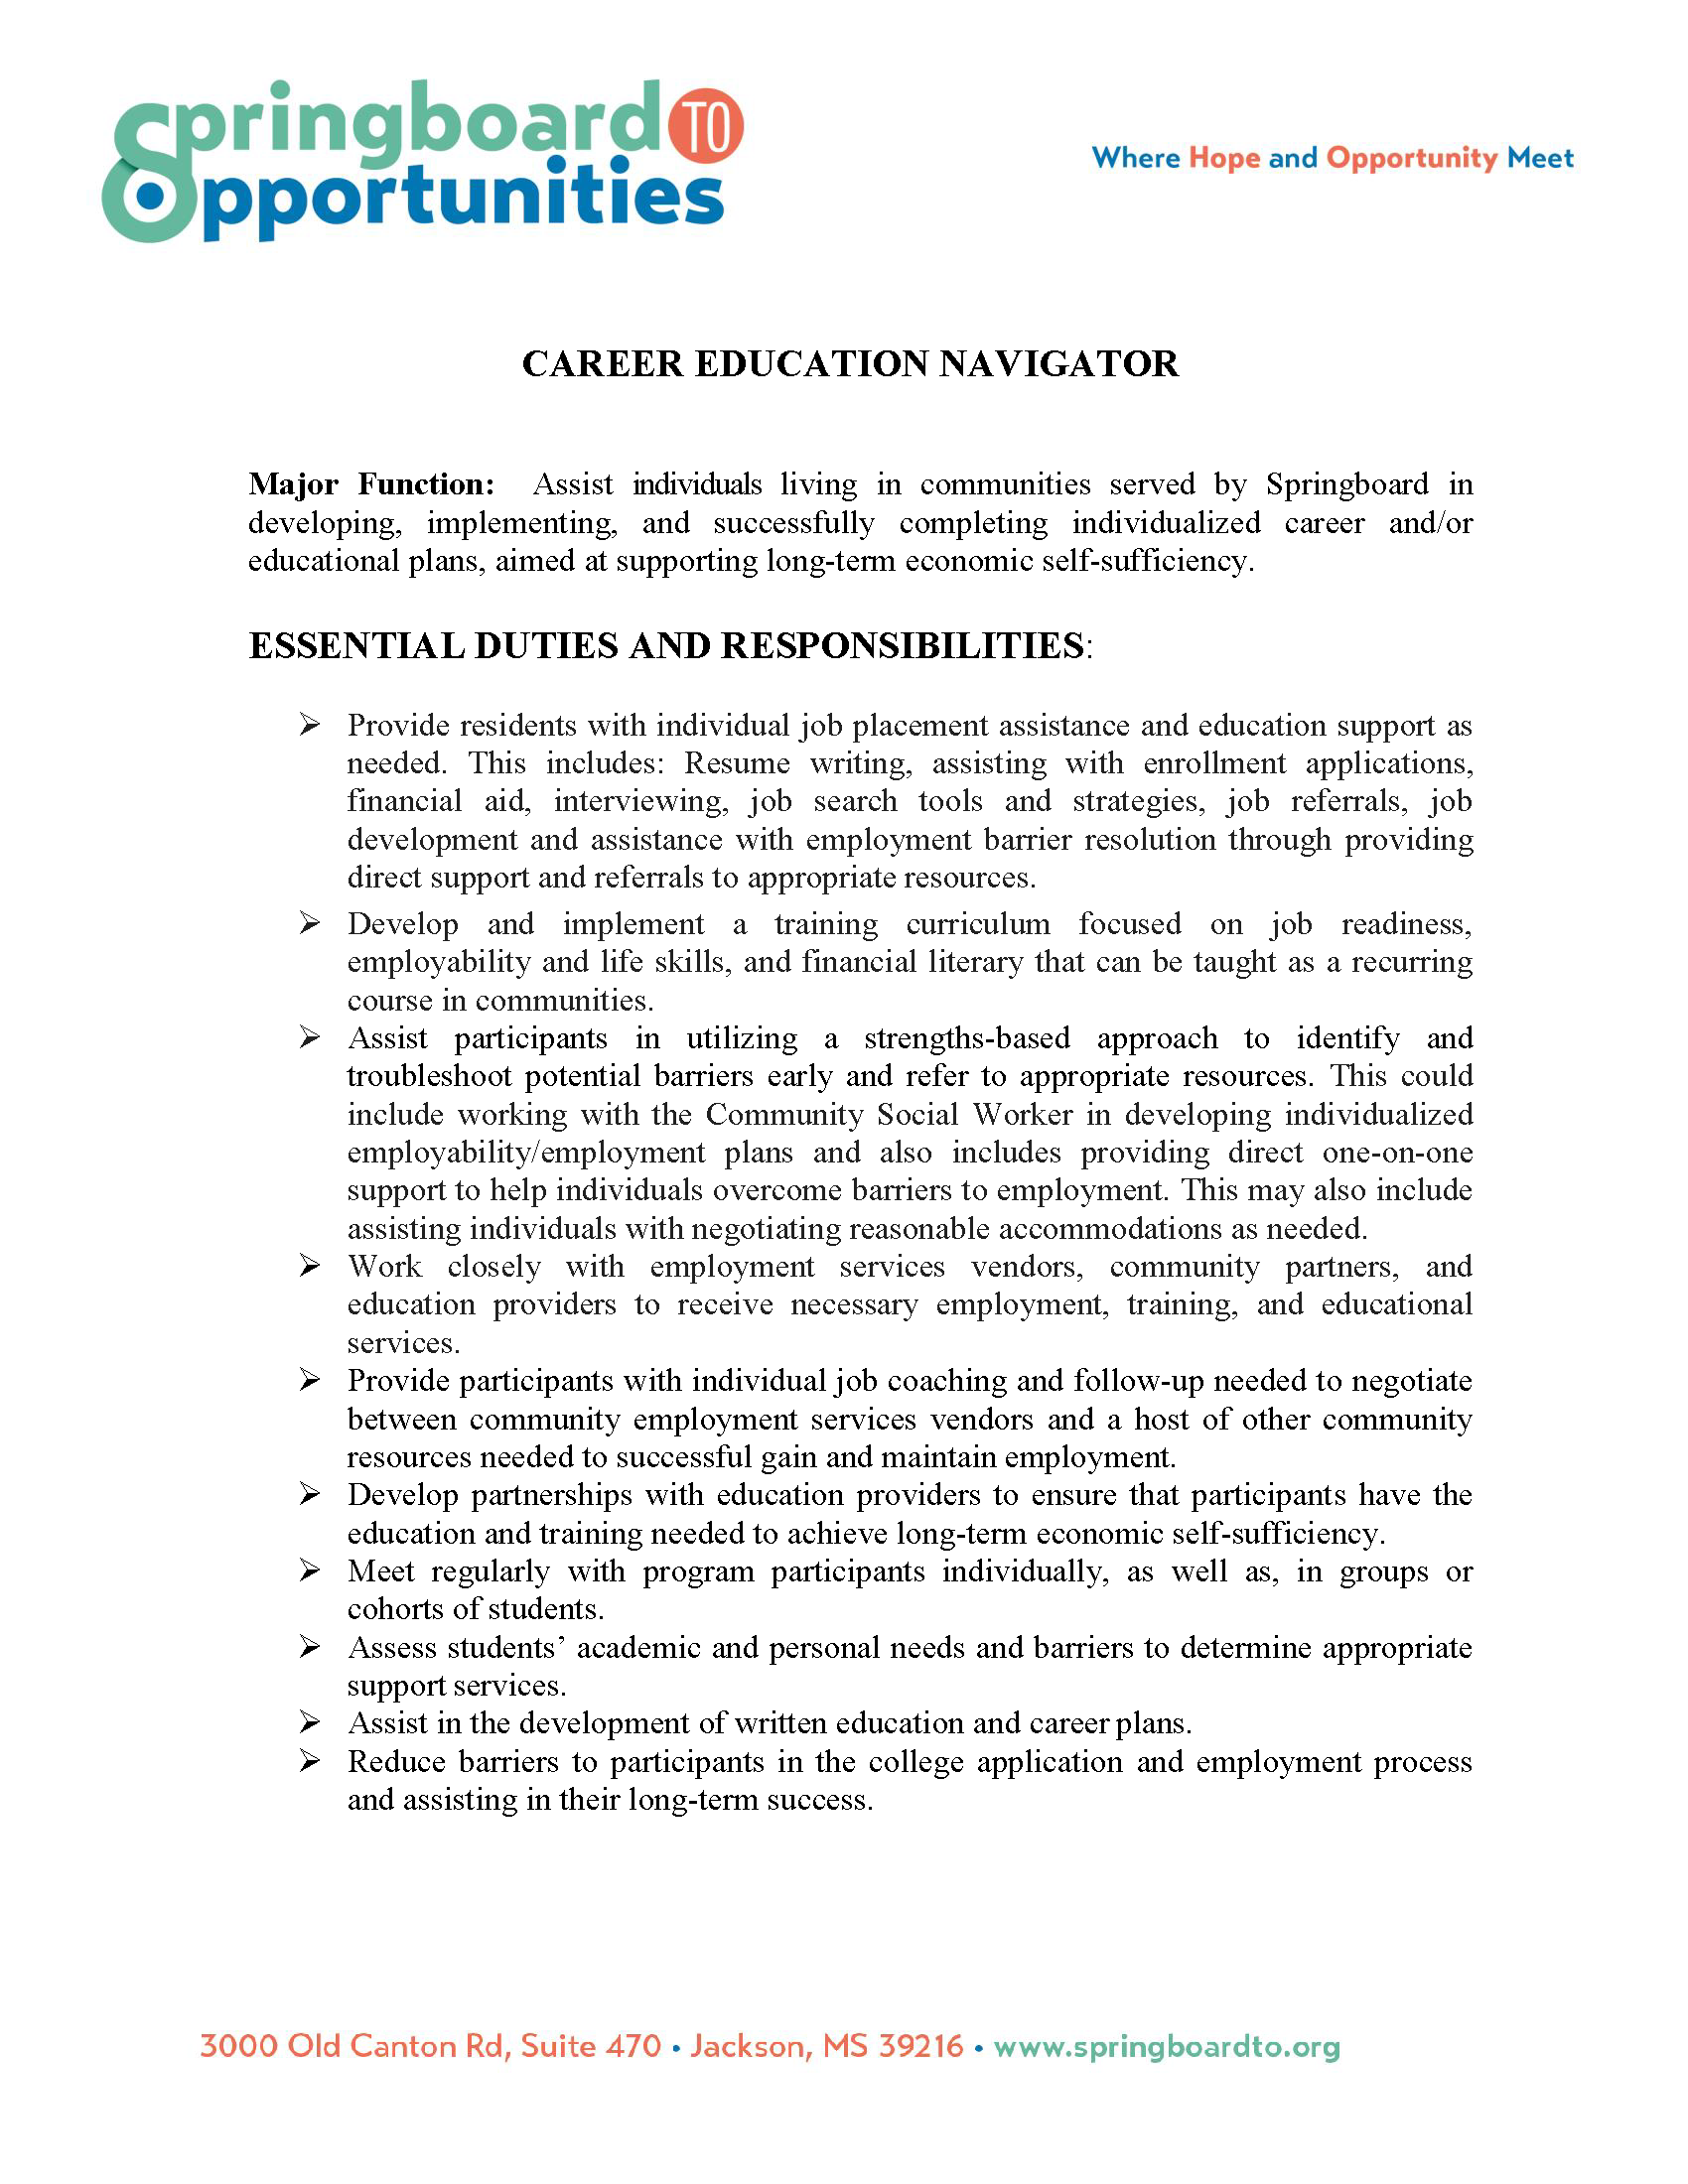 Career and Education Navigator Position